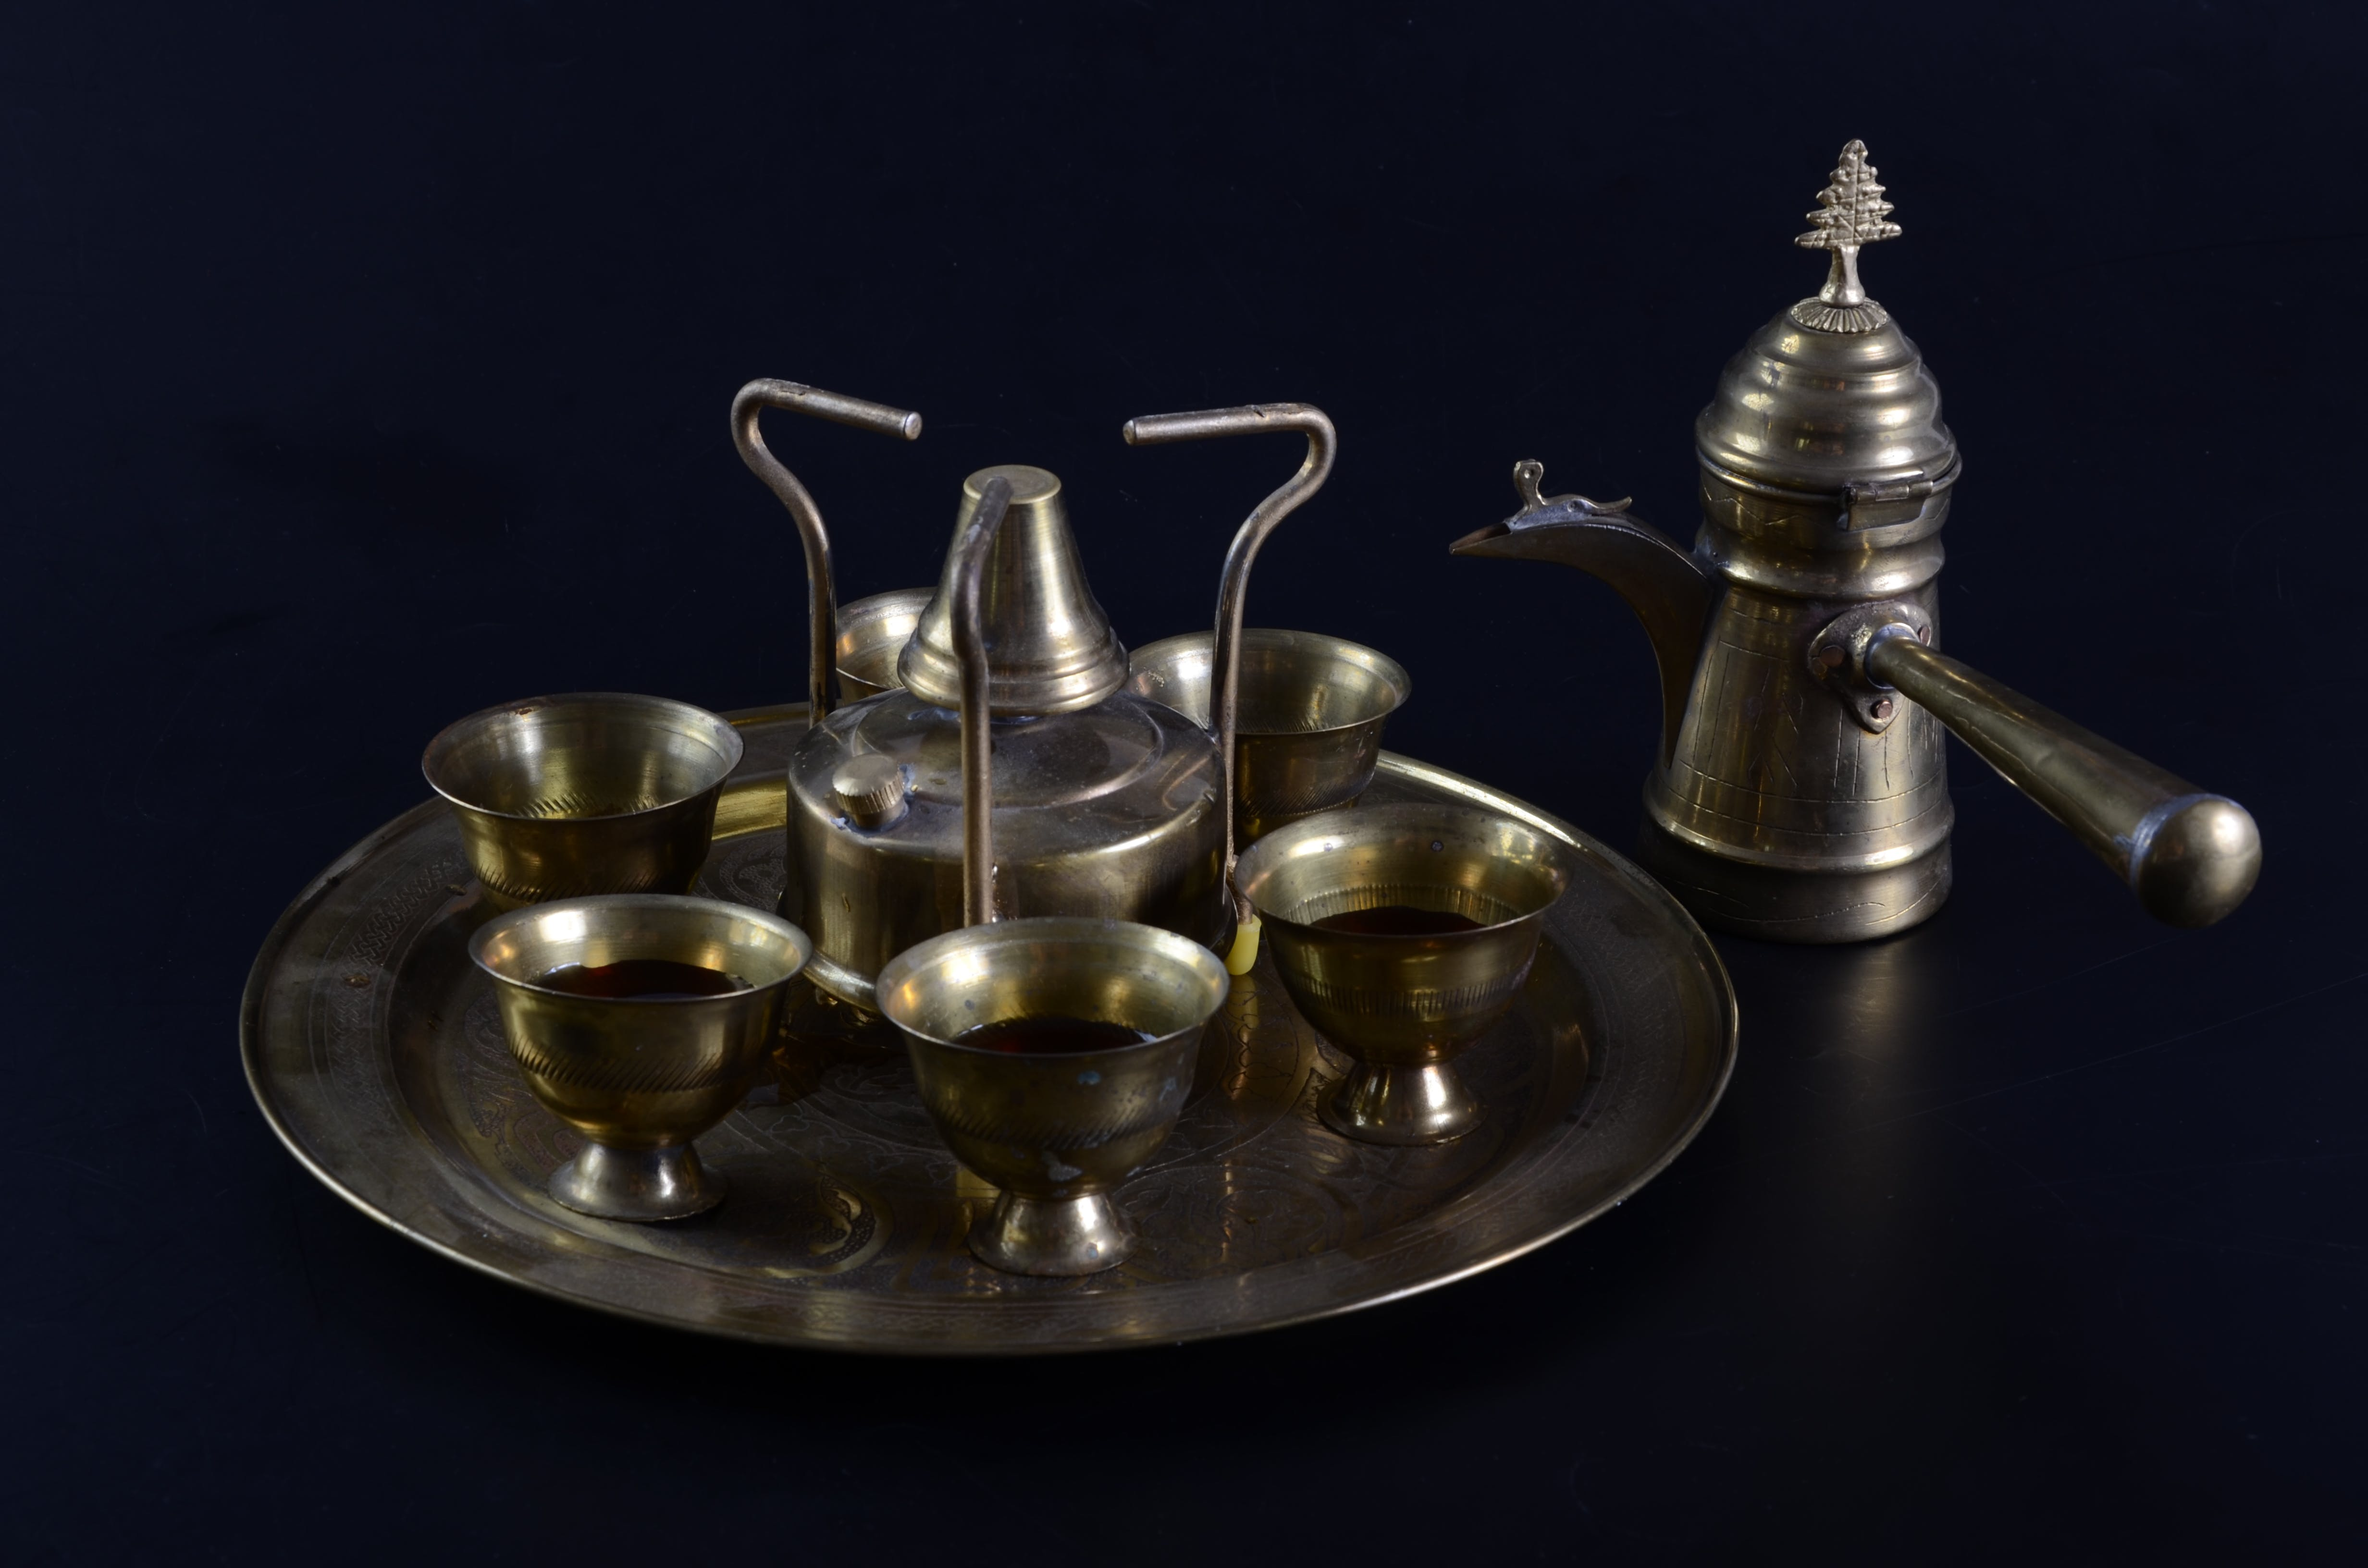 Free stock photo of cups, old, tray, teapot